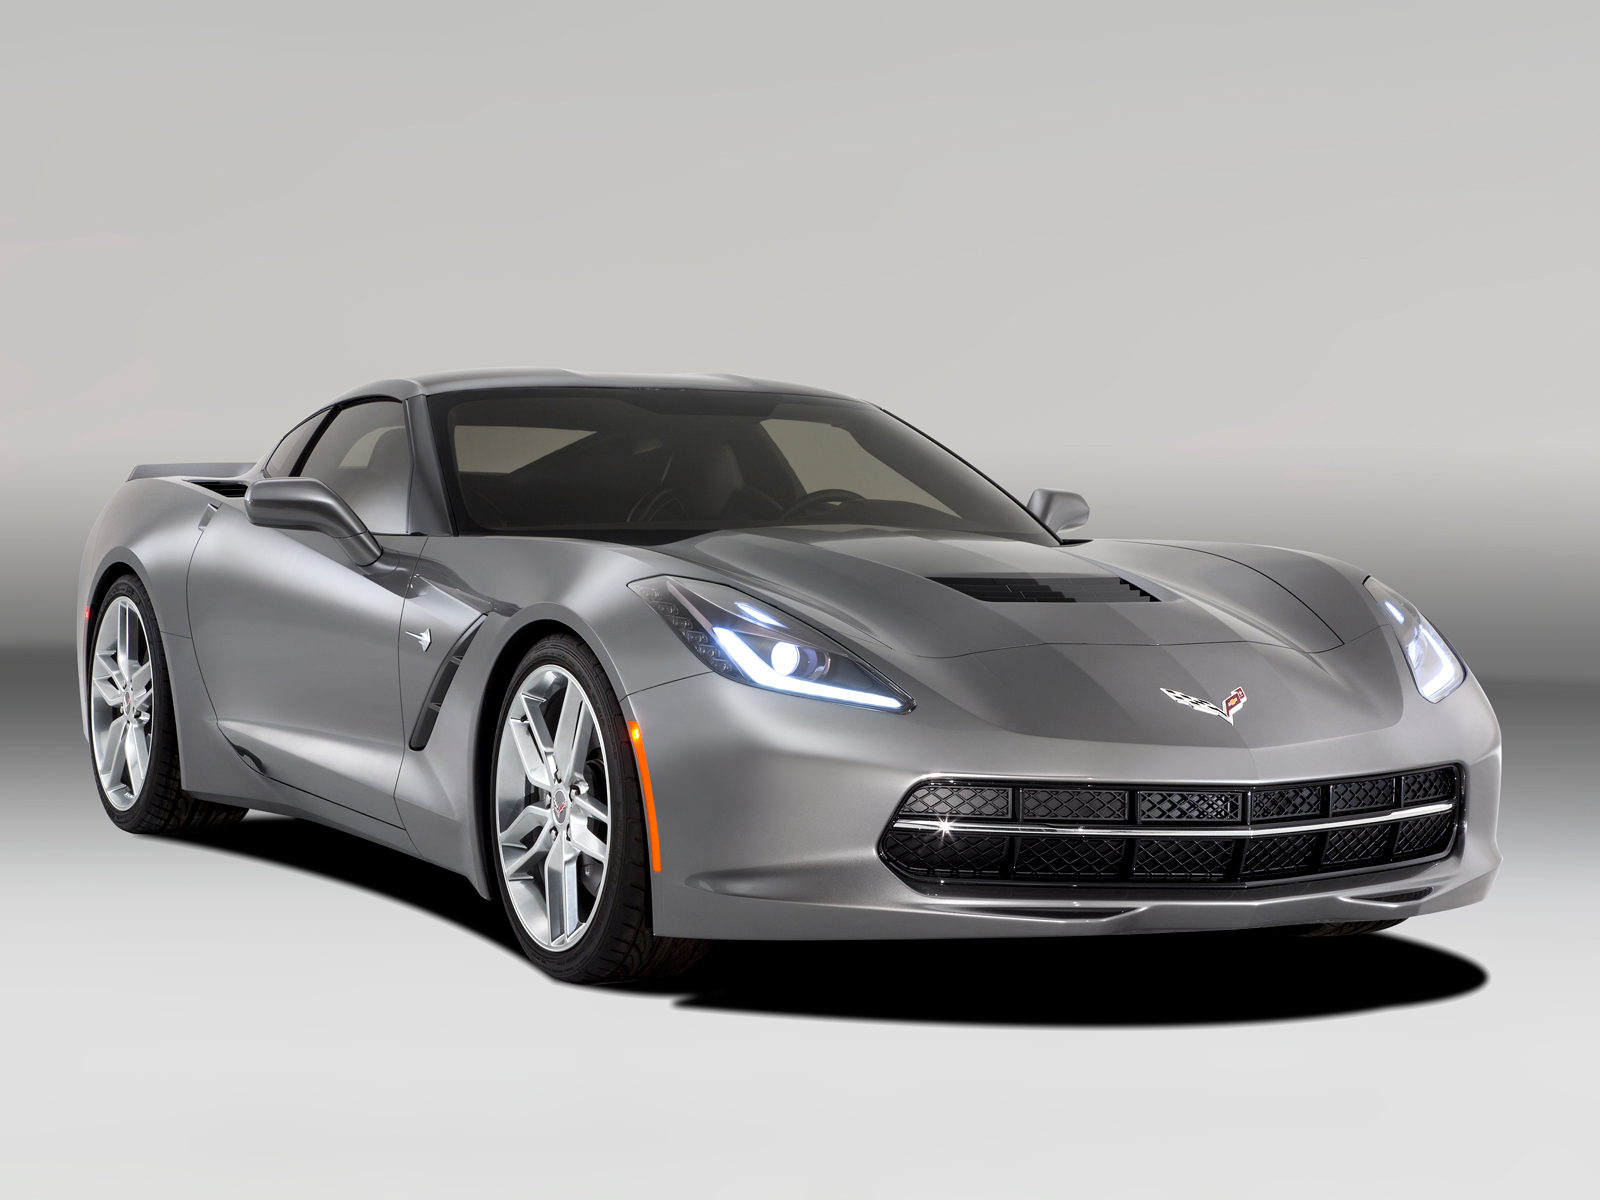 2014 C7 CORVETTE  Cars HD Wallpapers & Pictures